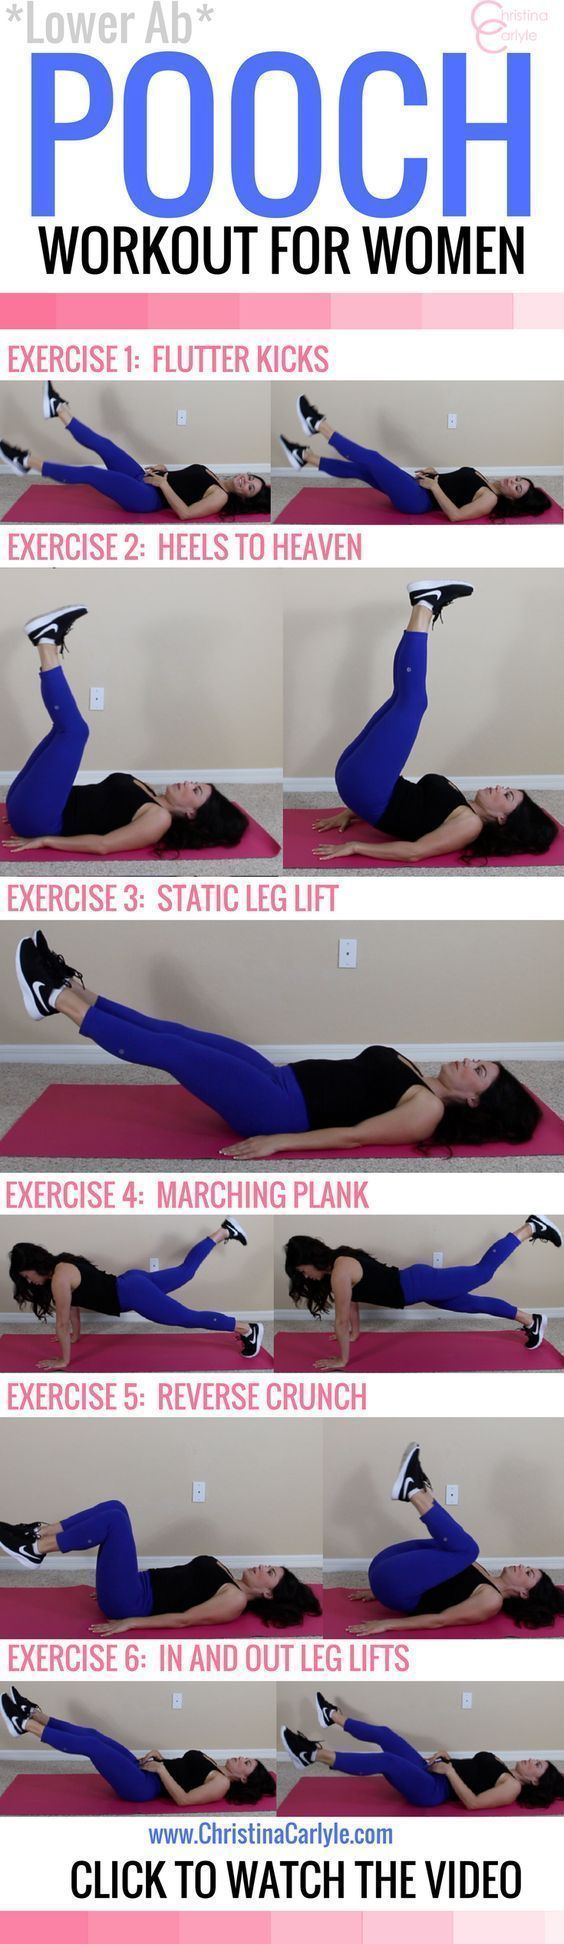 A STRONG core is ESSENTIAL for getting in shape and staying fit. This stability ball ab workout at home is PERFECT for burning calories and toning your midsection.